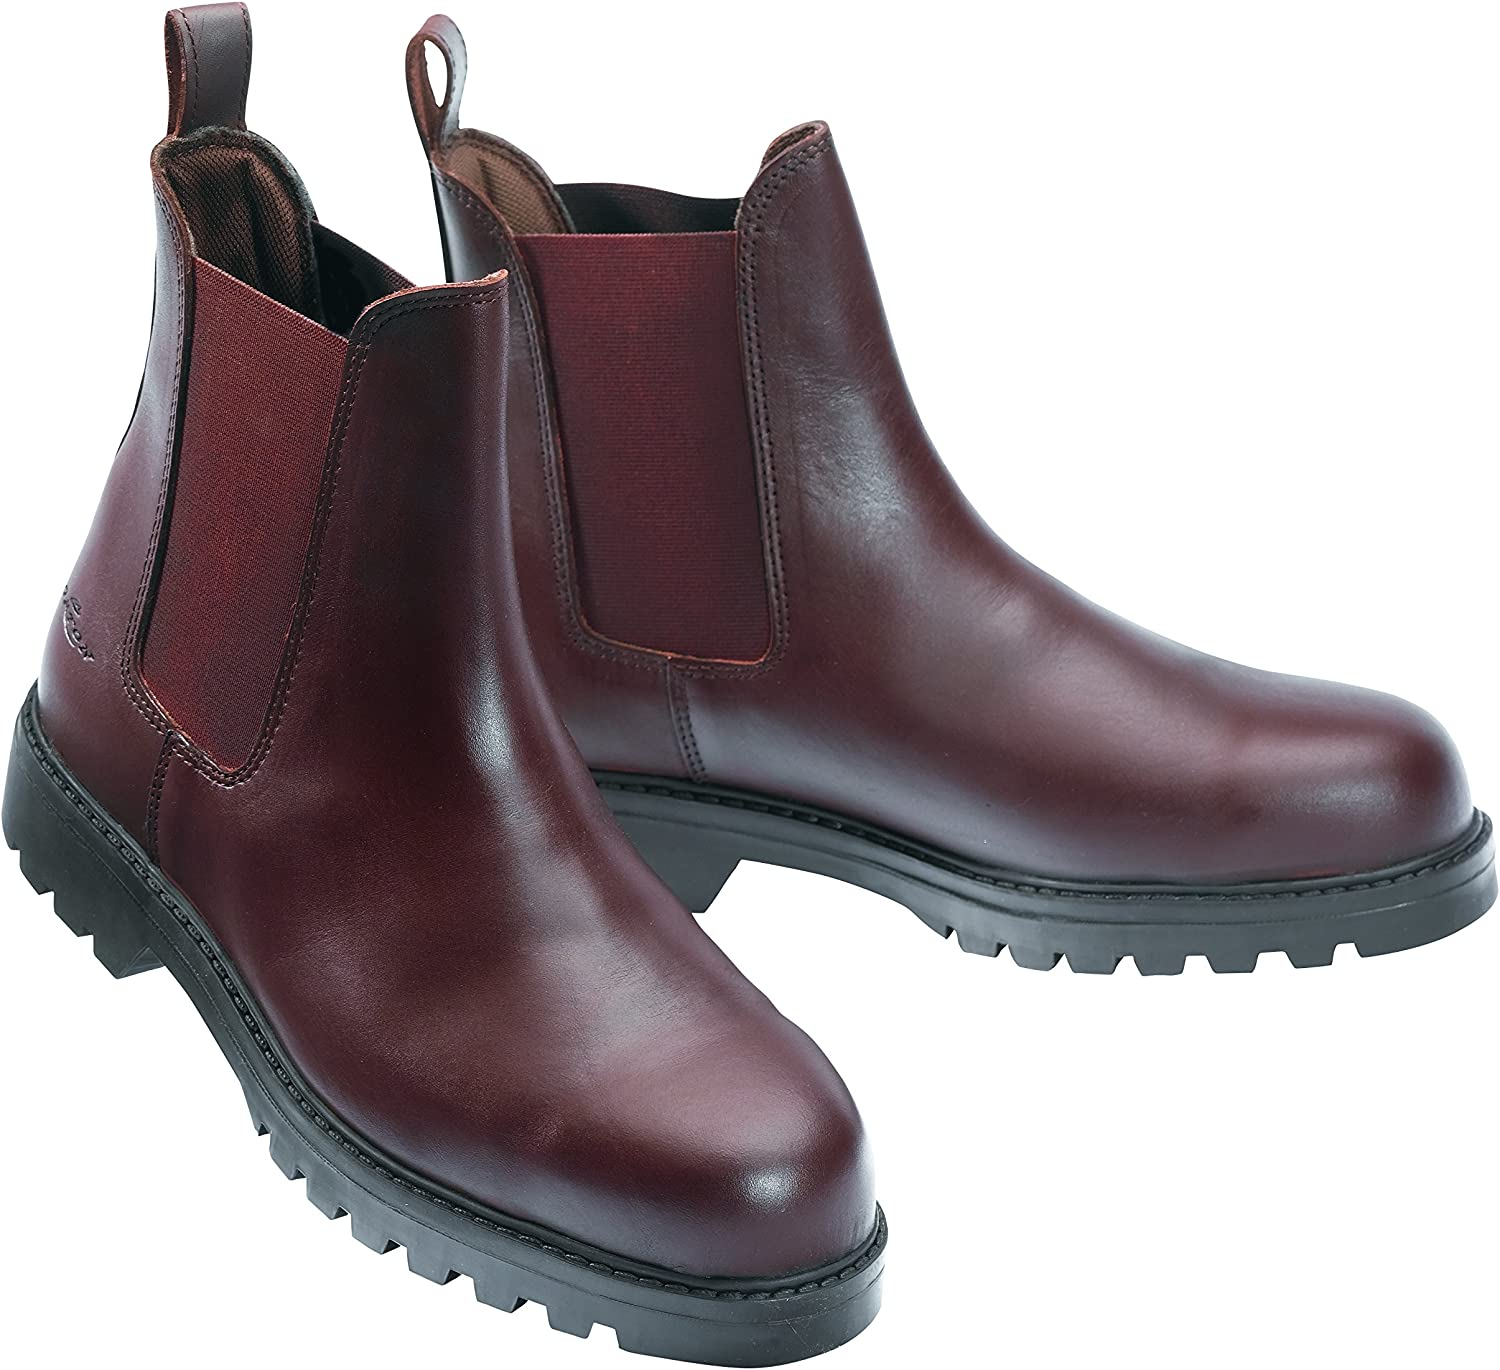 'Stiefel Norton Safety     Fitness-Händler